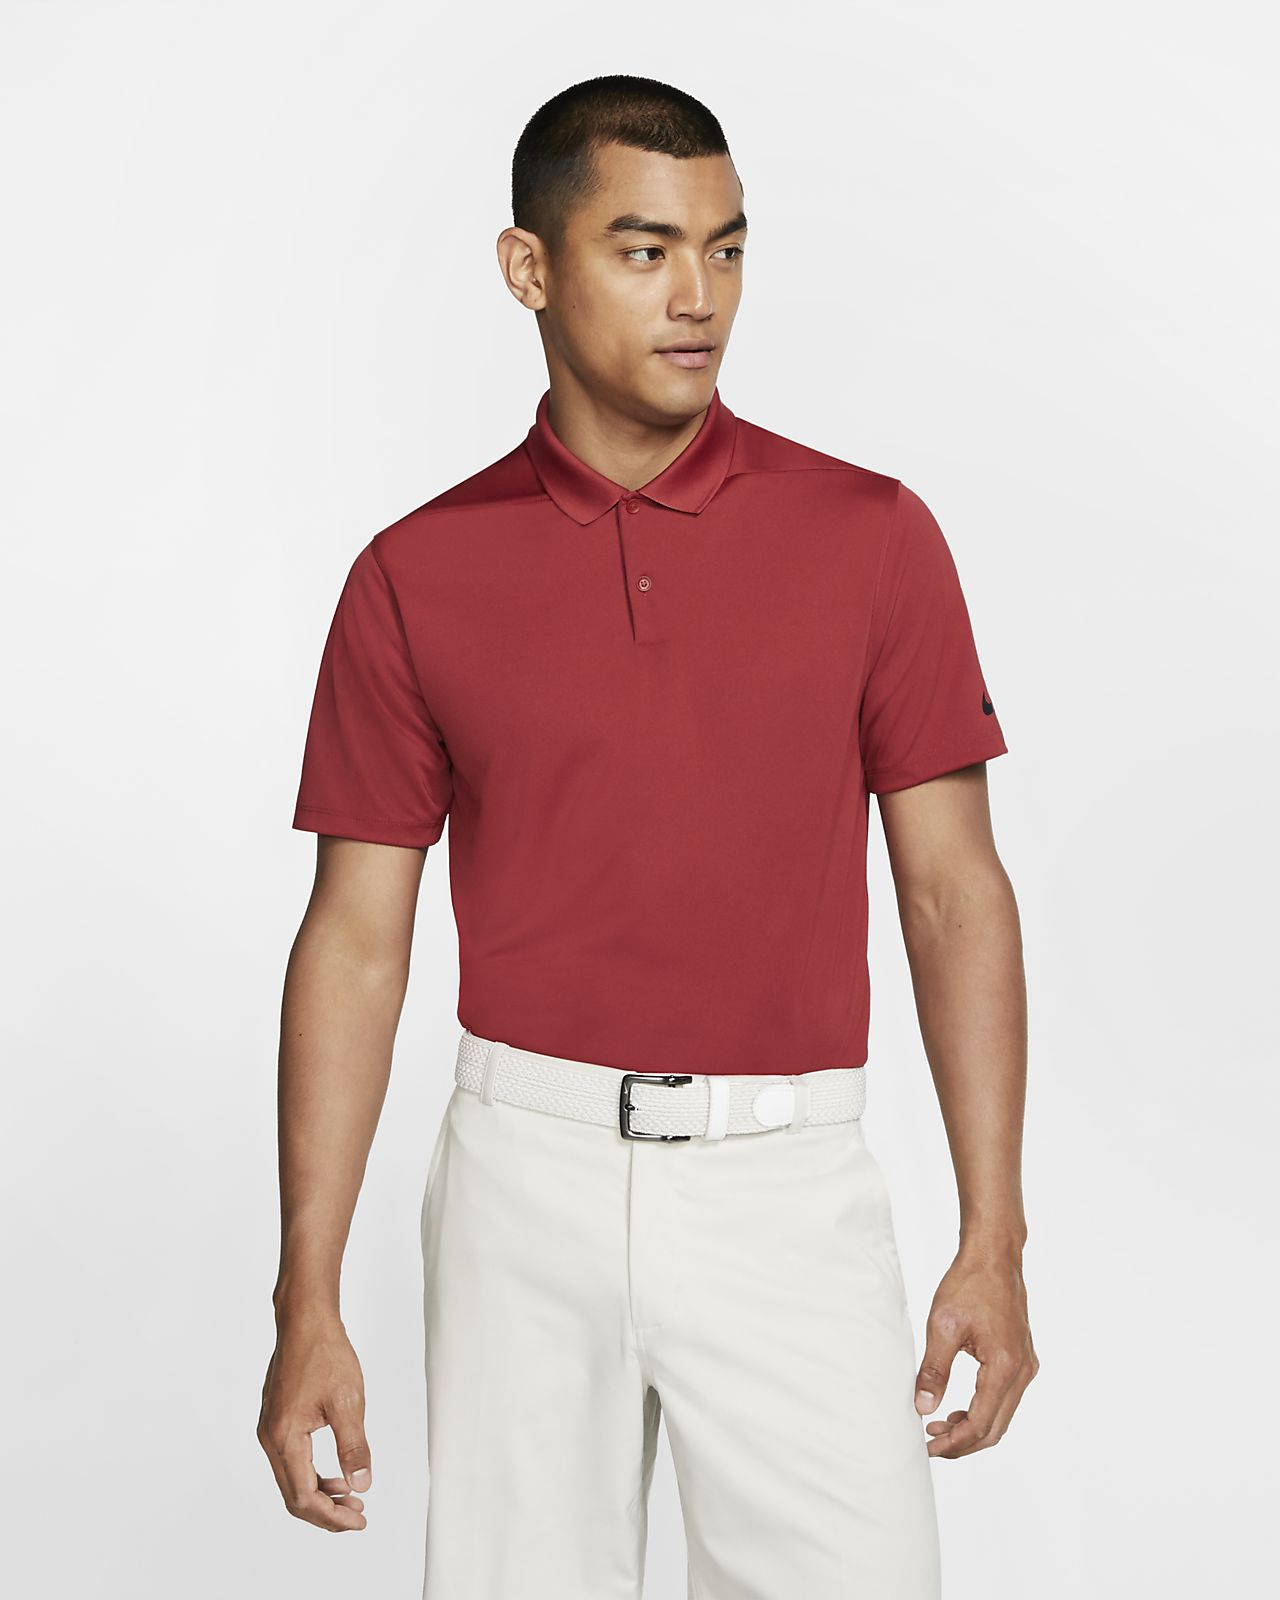 3bbb5e19 Nike Dri-FIT Victory Men's Golf Polo. Nike.com